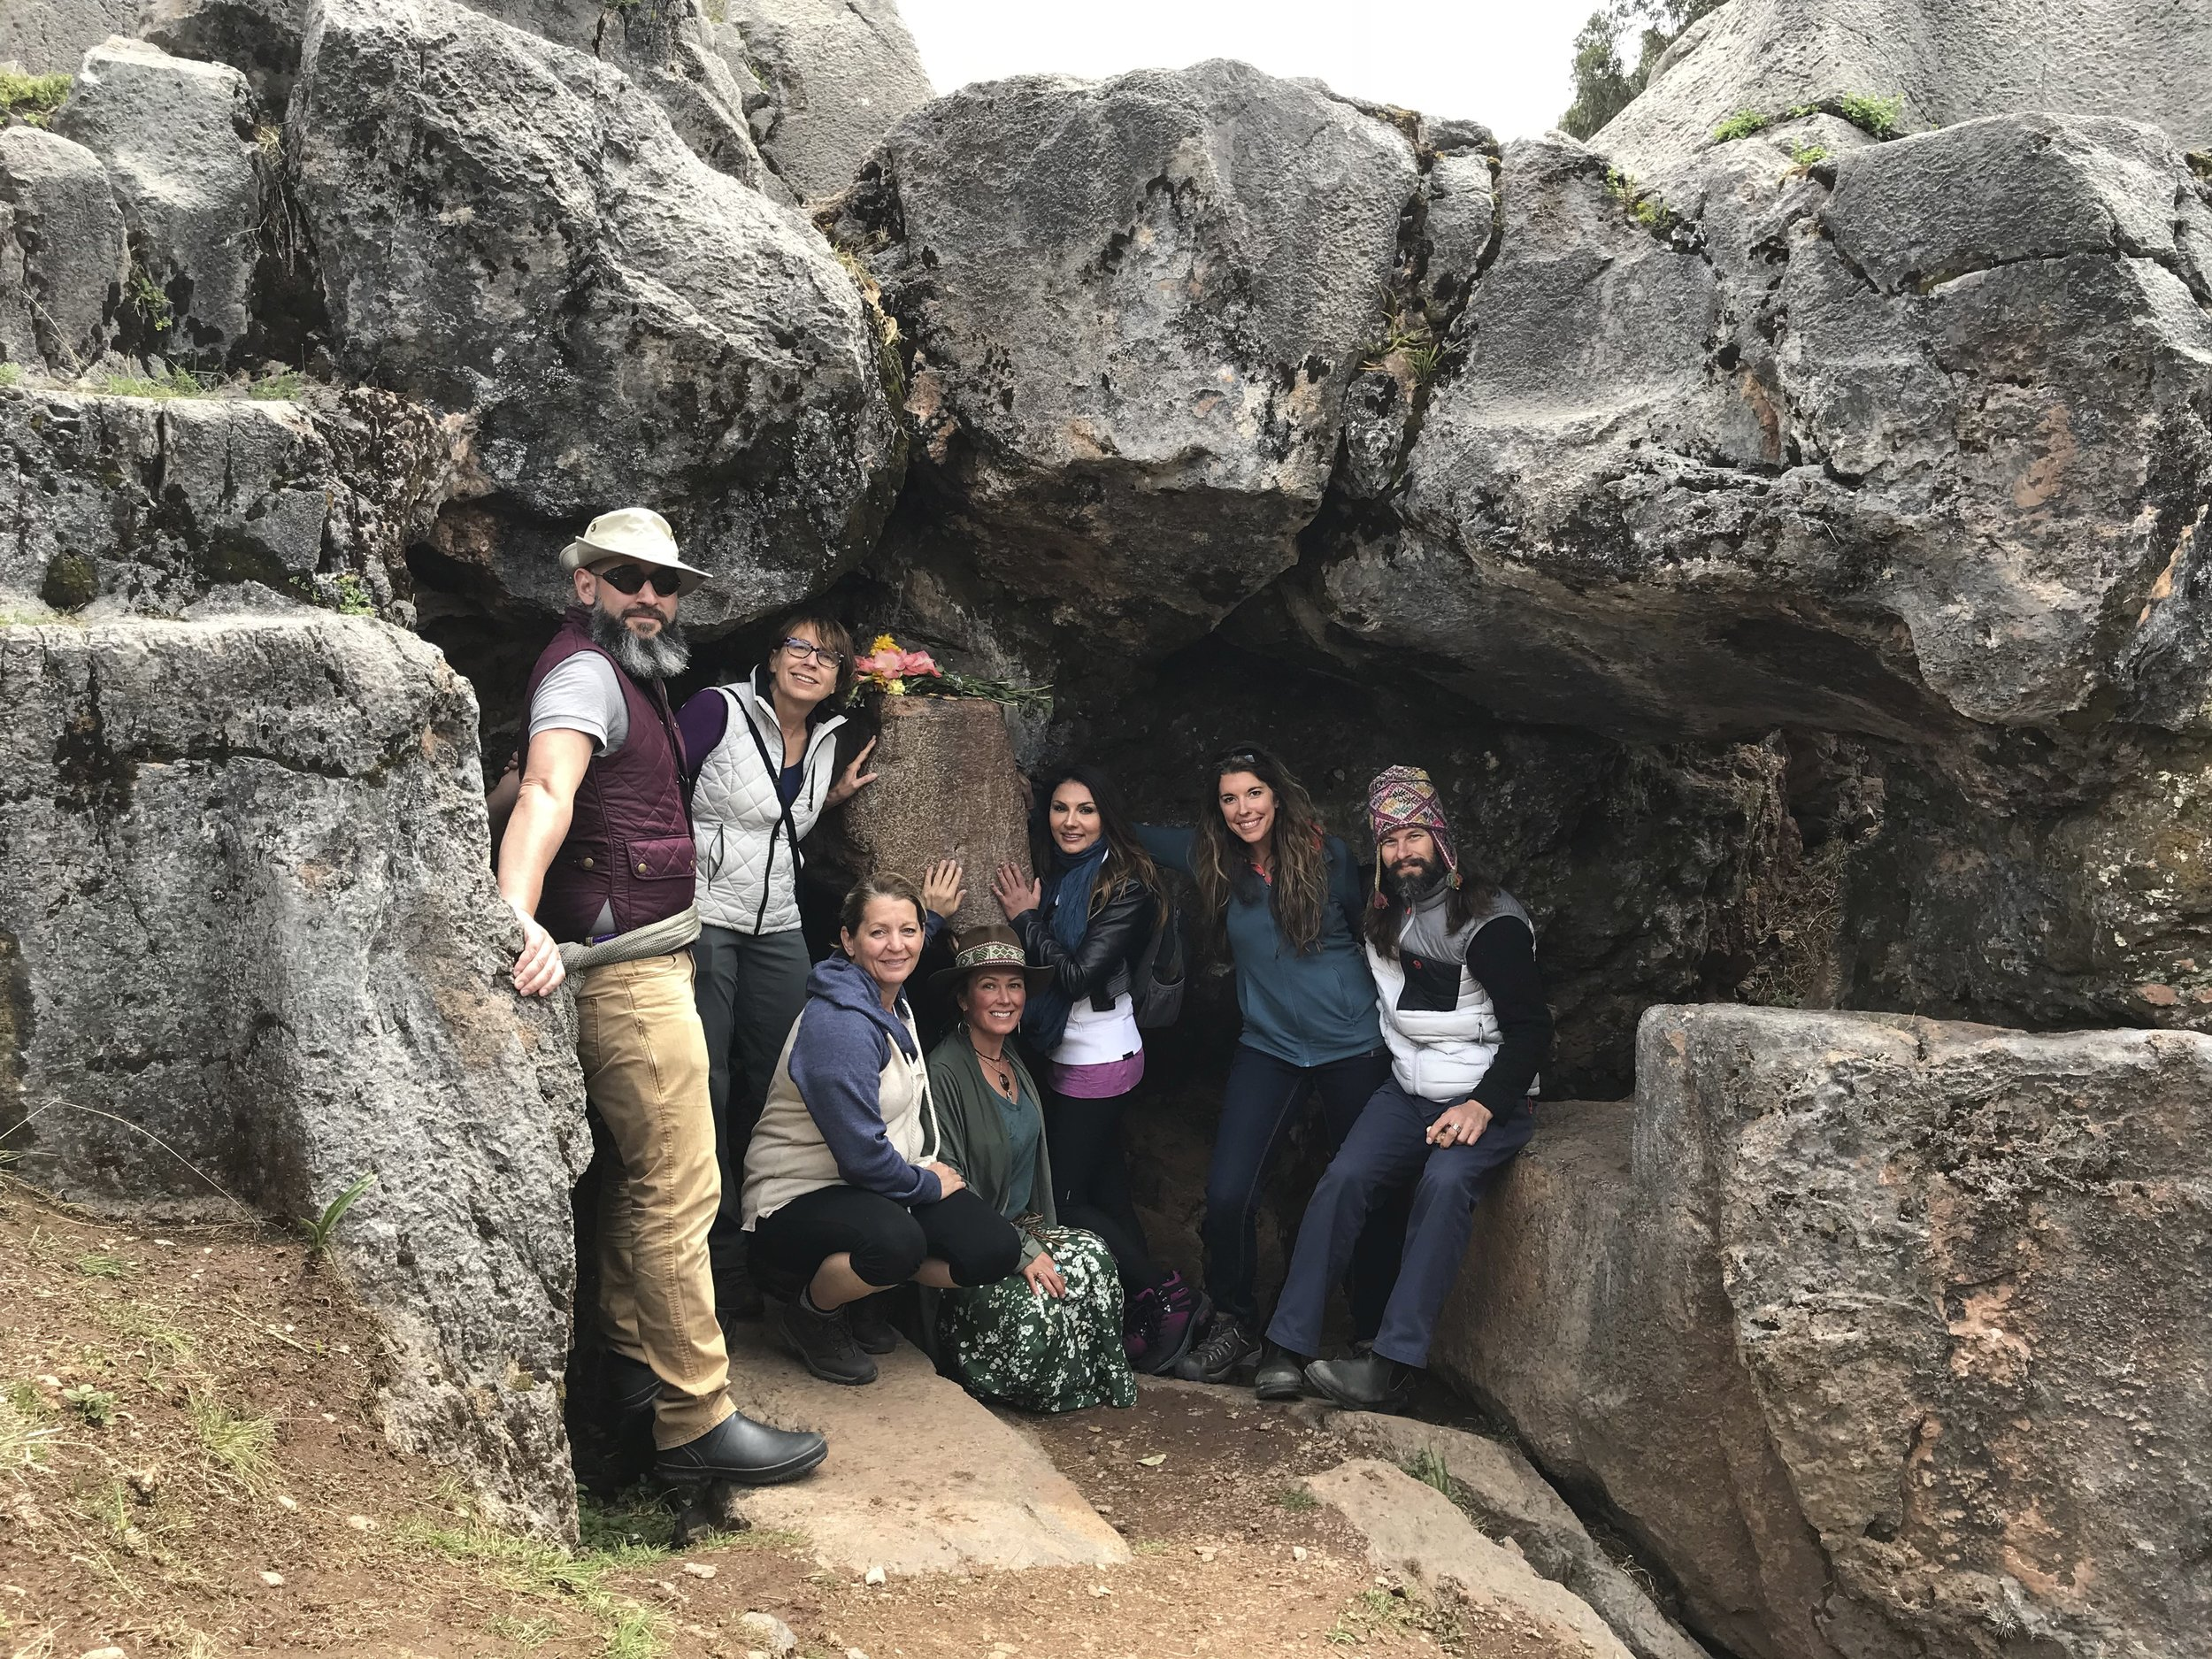 2017 Journey Participants, Temple of the Monkeys, Cusco Peru